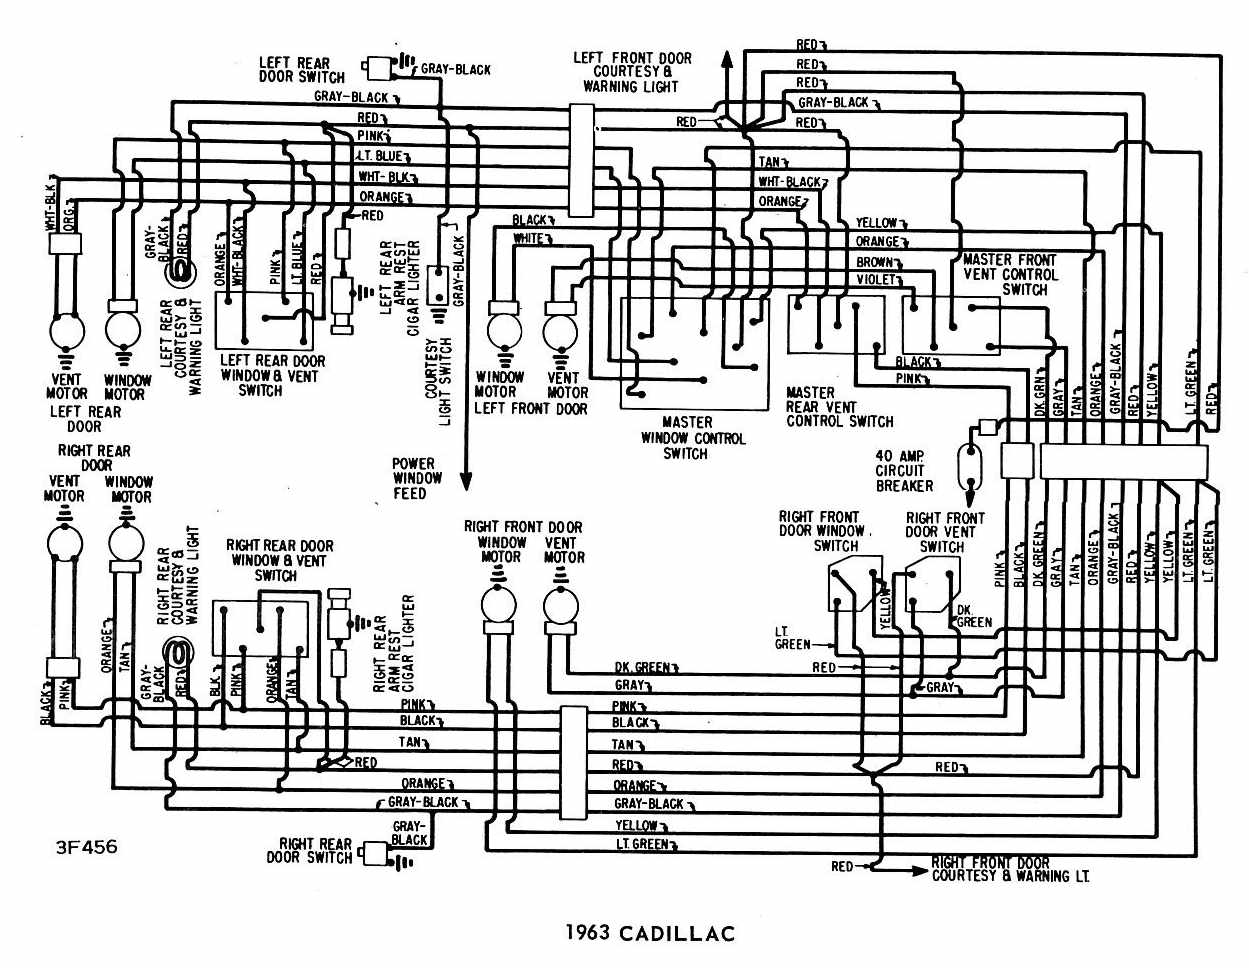 pontiac aztek wiring diagram pontiac discover your wiring keystone cougar electrical schematic